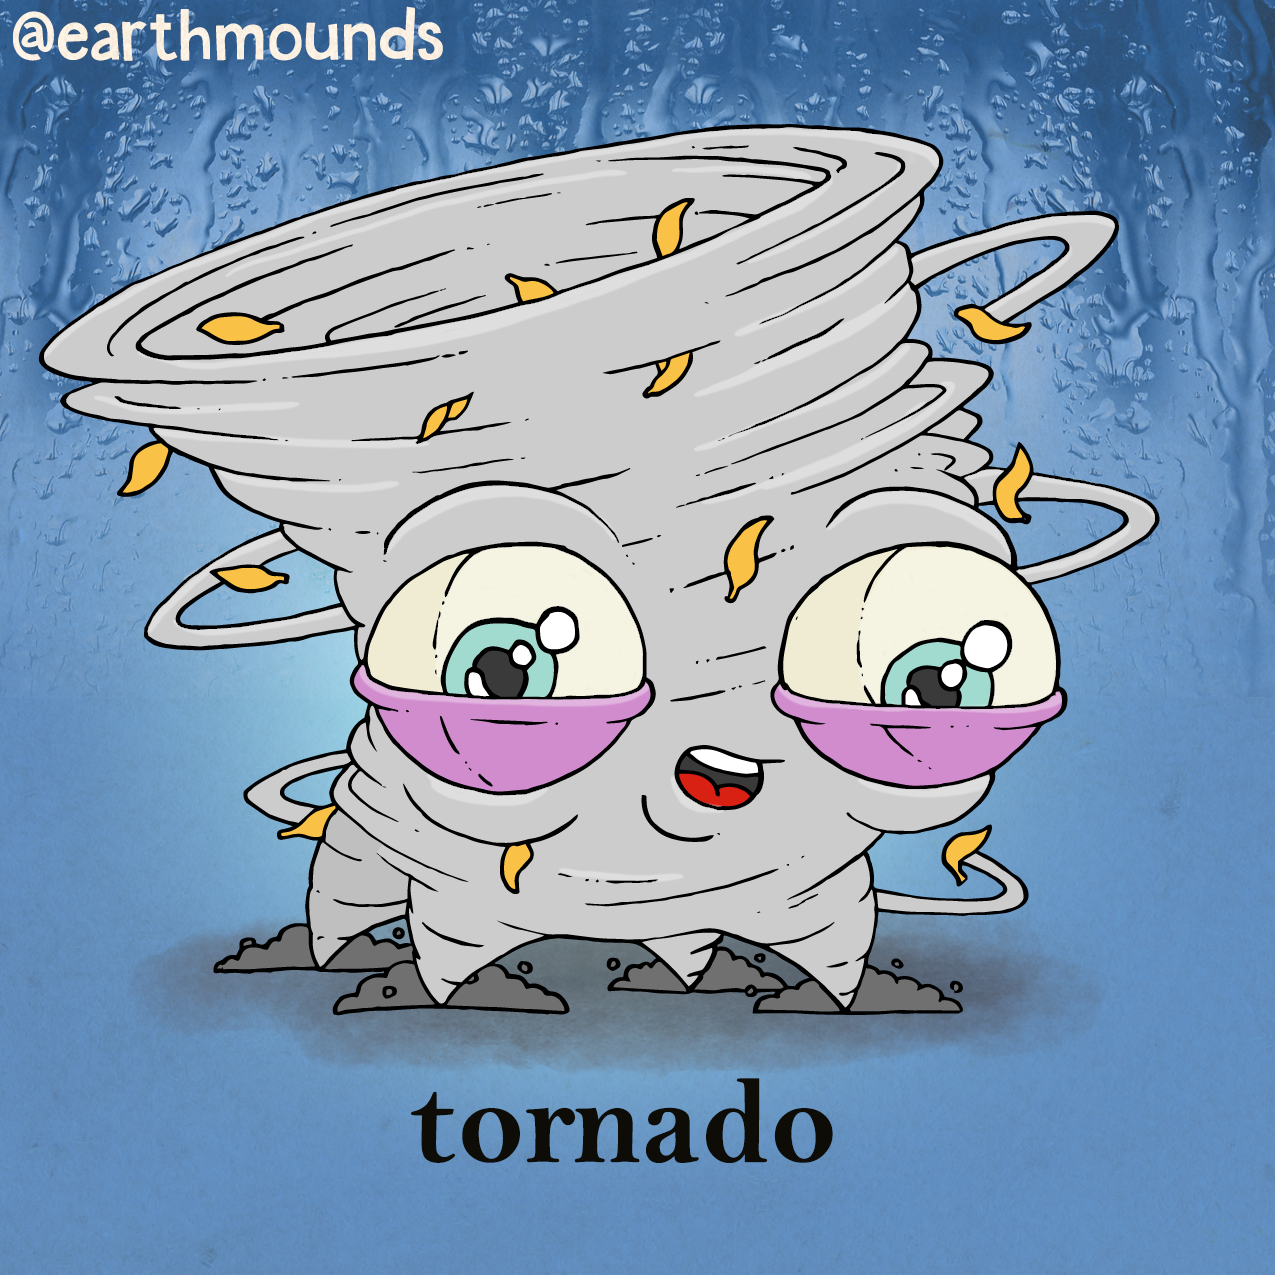 A Tornado And A Twister Are Different Terms For The Same